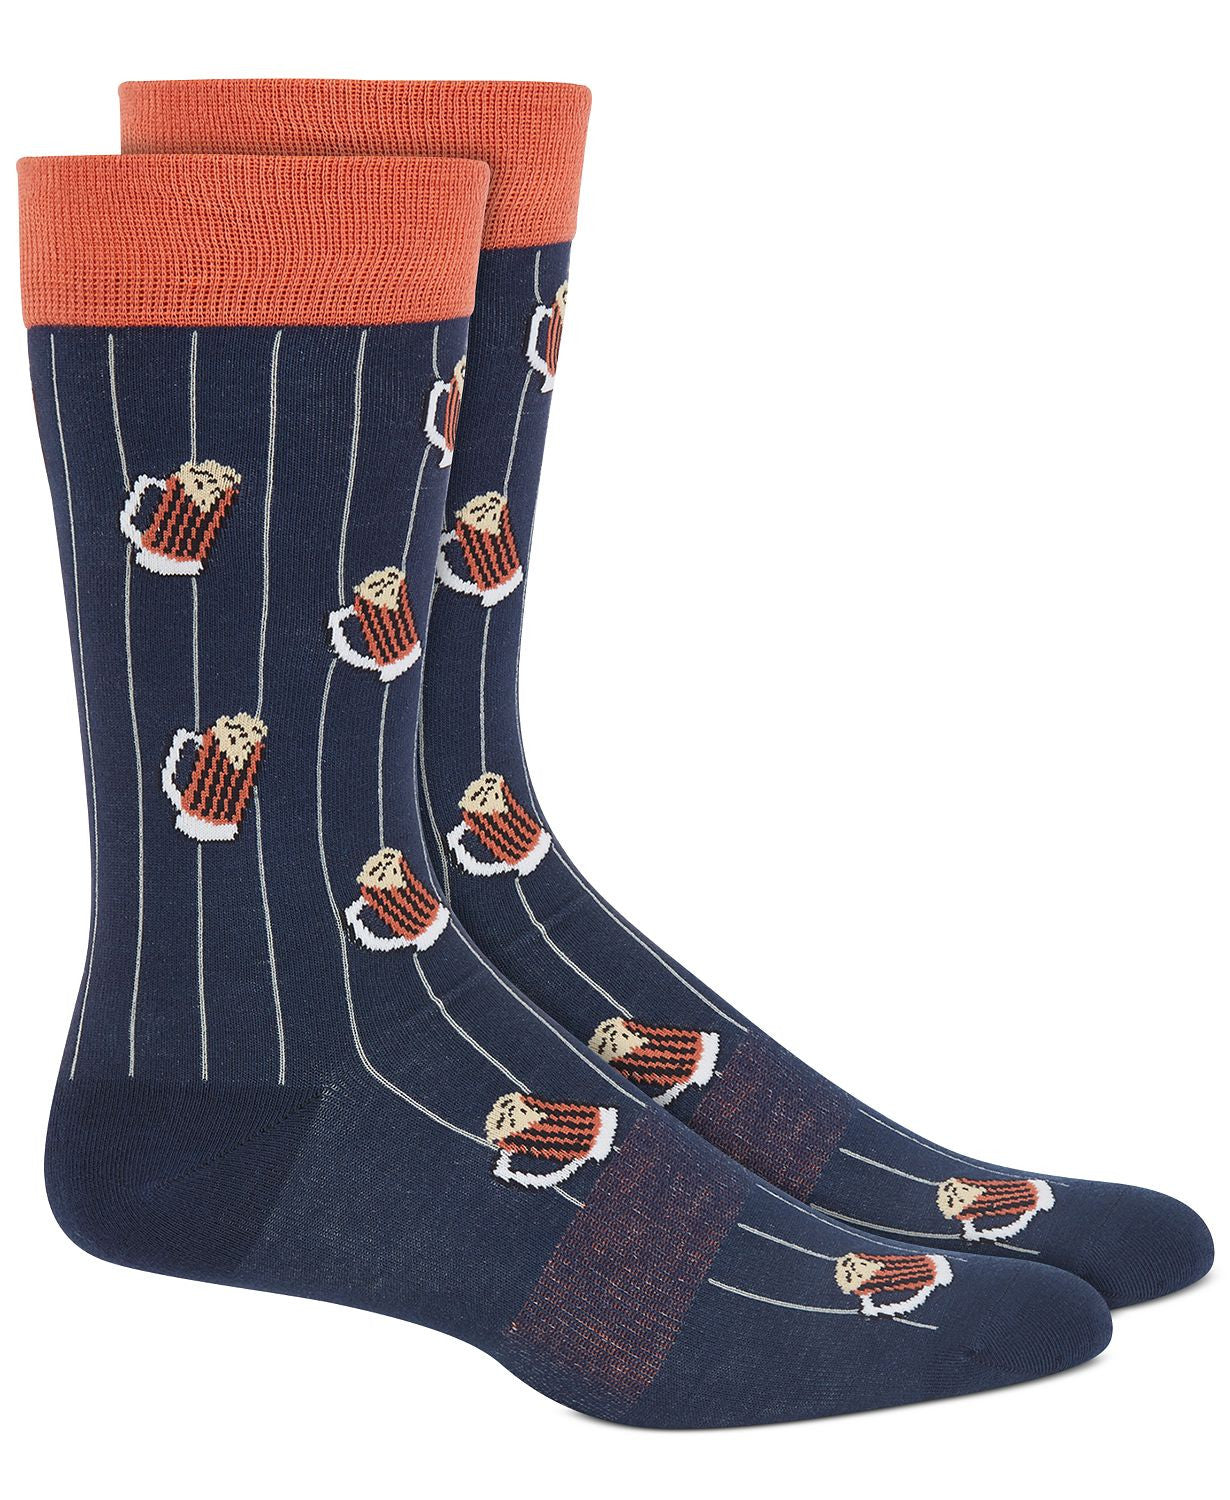 BAR III Printed Pinstripe Socks Navy Orange